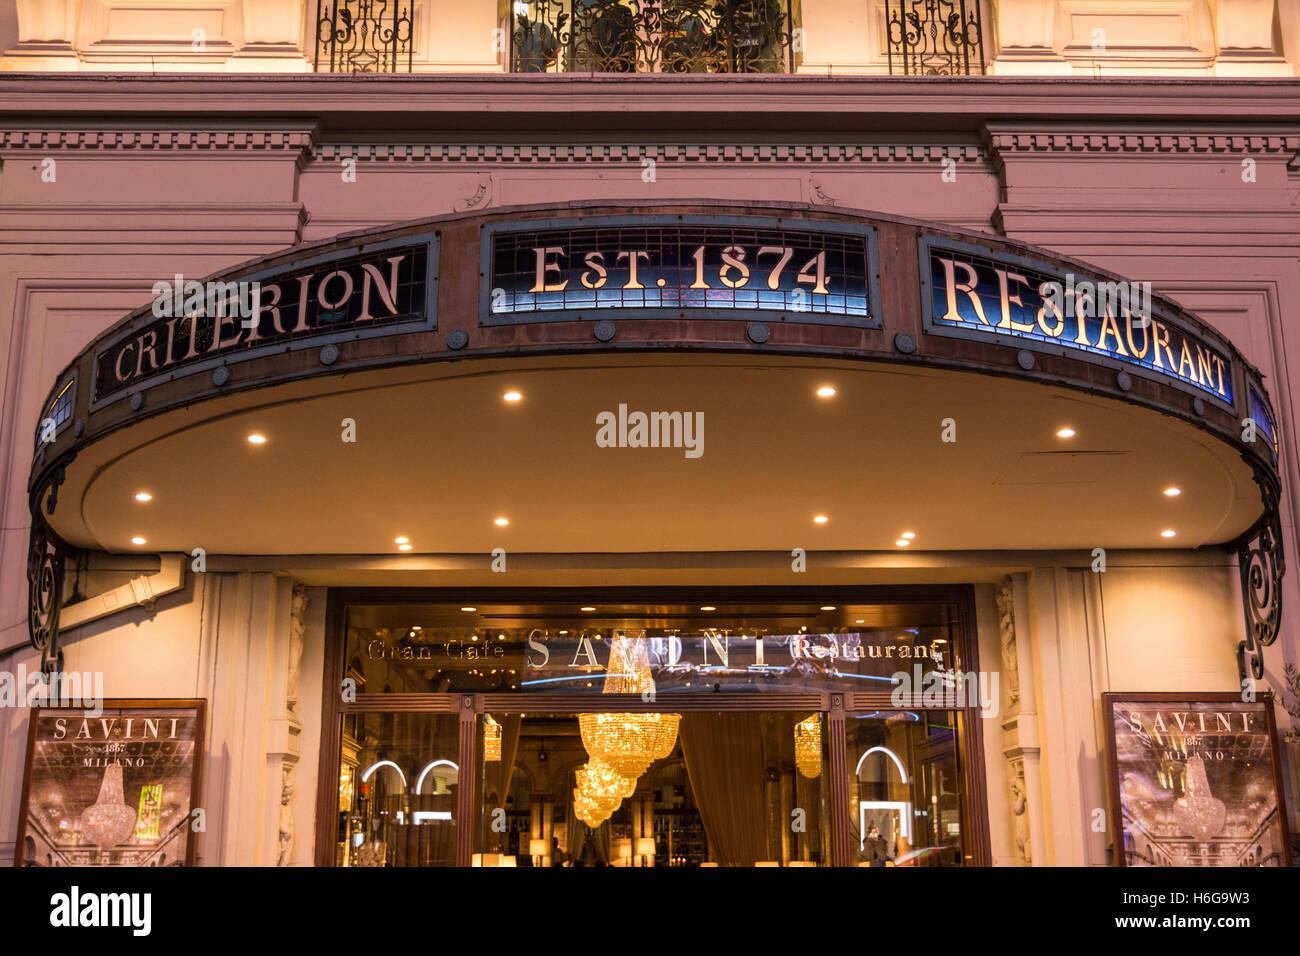 Exterior of the Criterion Restaurant in Piccadilly London England UK - Stock Image